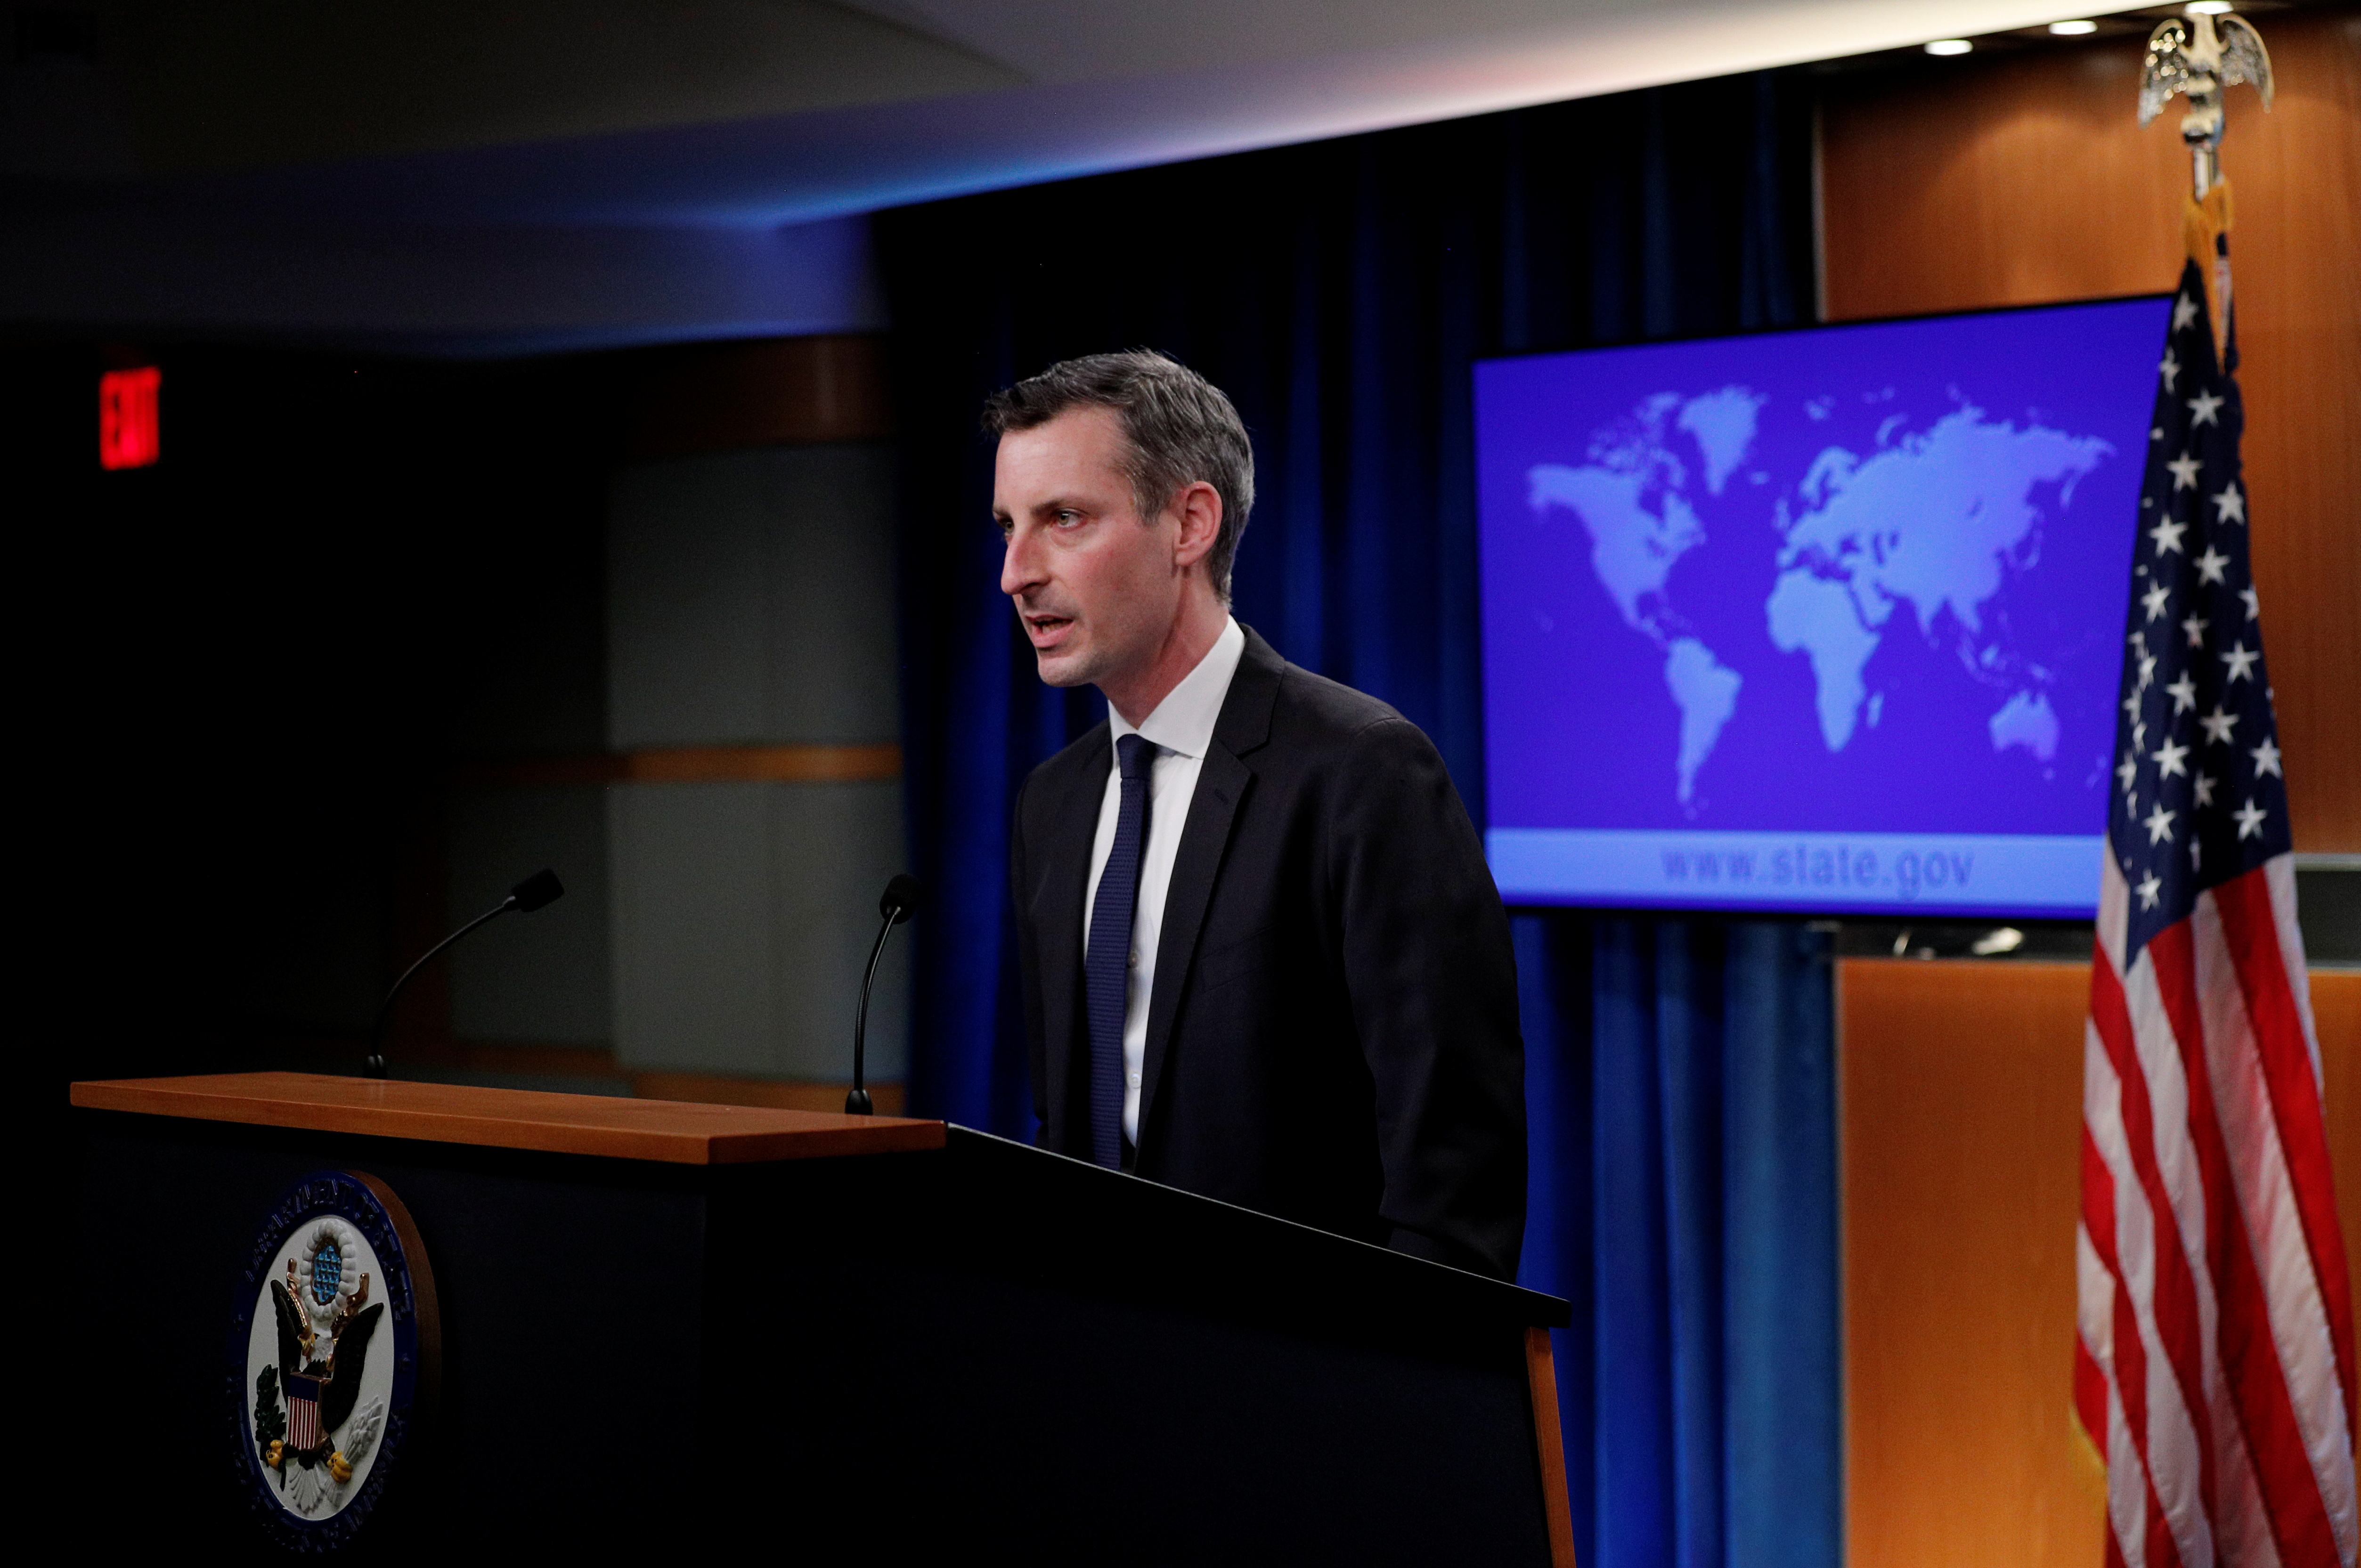 U.S. State Department Spokesman Ned Price speaks to reporters during a news briefing at the State Department in Washington, U.S., March 1, 2021. REUTERS/Tom Brenner/Pool